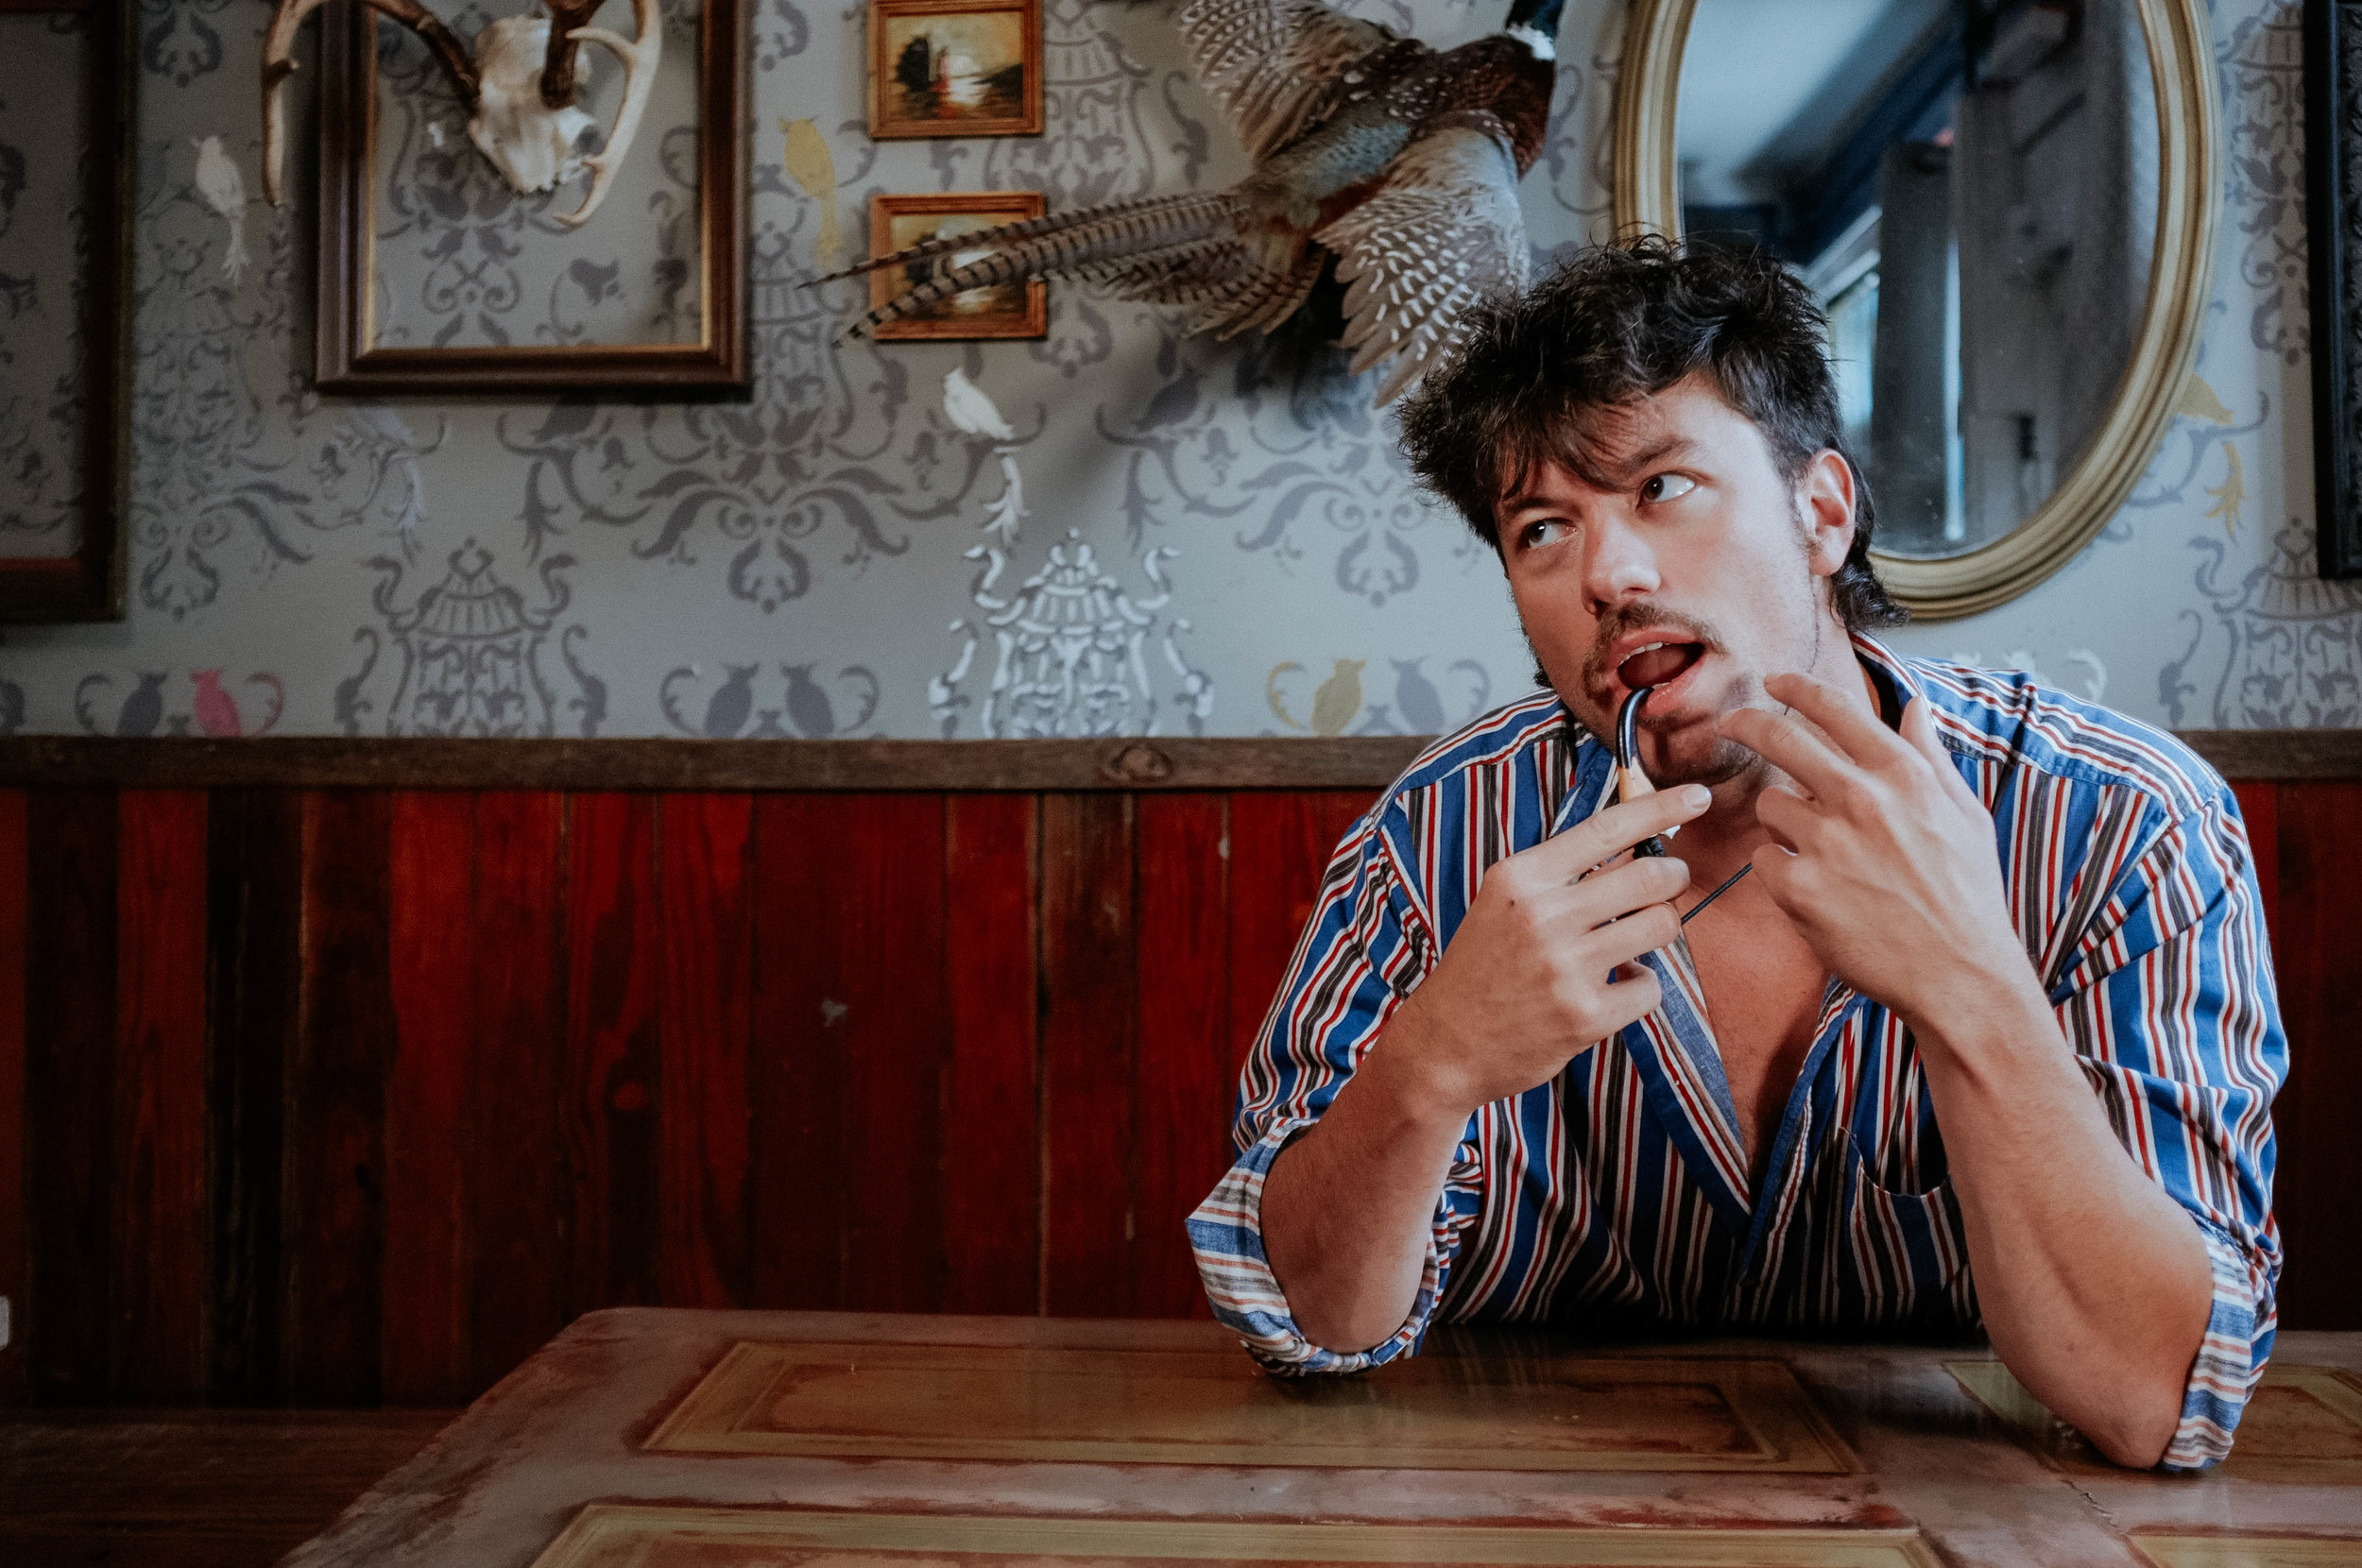 """On this episode, - we sat down with frontman, Walker Trull of Crab Claw to discuss his latest upcoming album, """"Memories Arise."""" The album touches on the memories of family life, where in many songs you listen to conversations Trull had with his mother about unfortunate and rather hysterical scenarios; hysterical, both in hardship and laughter on topics of love, loss, and growing up."""